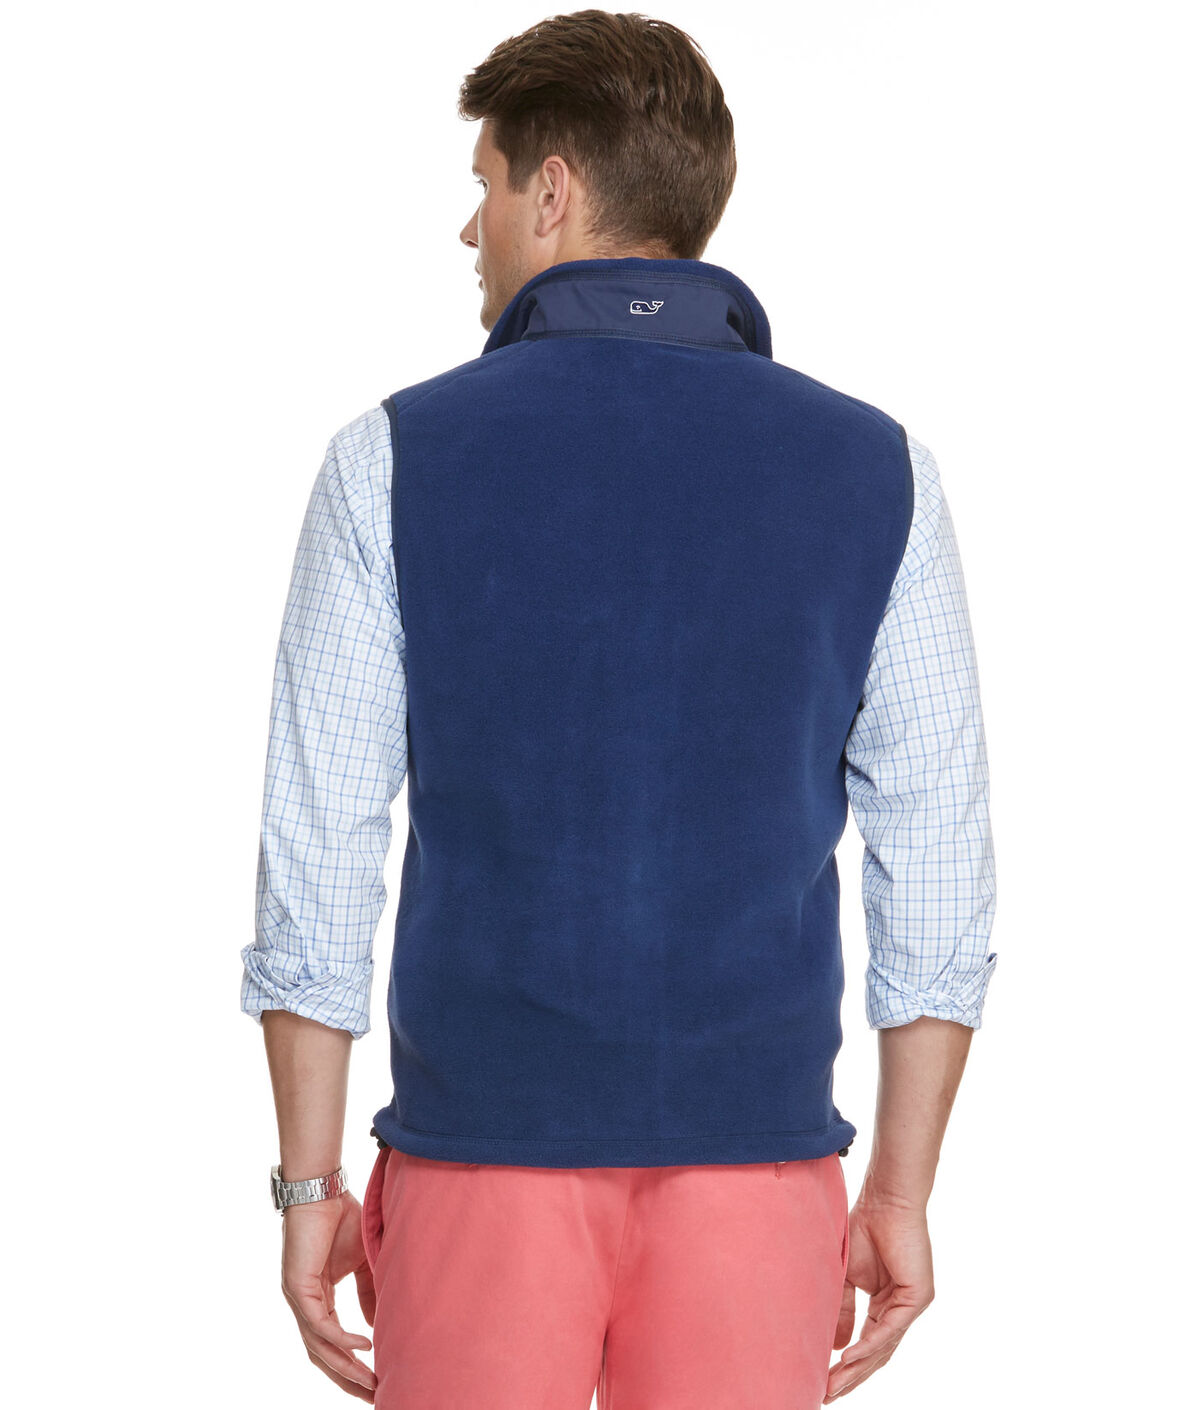 Men S Vests And Outerwear Harbor Fleece Vest For Men